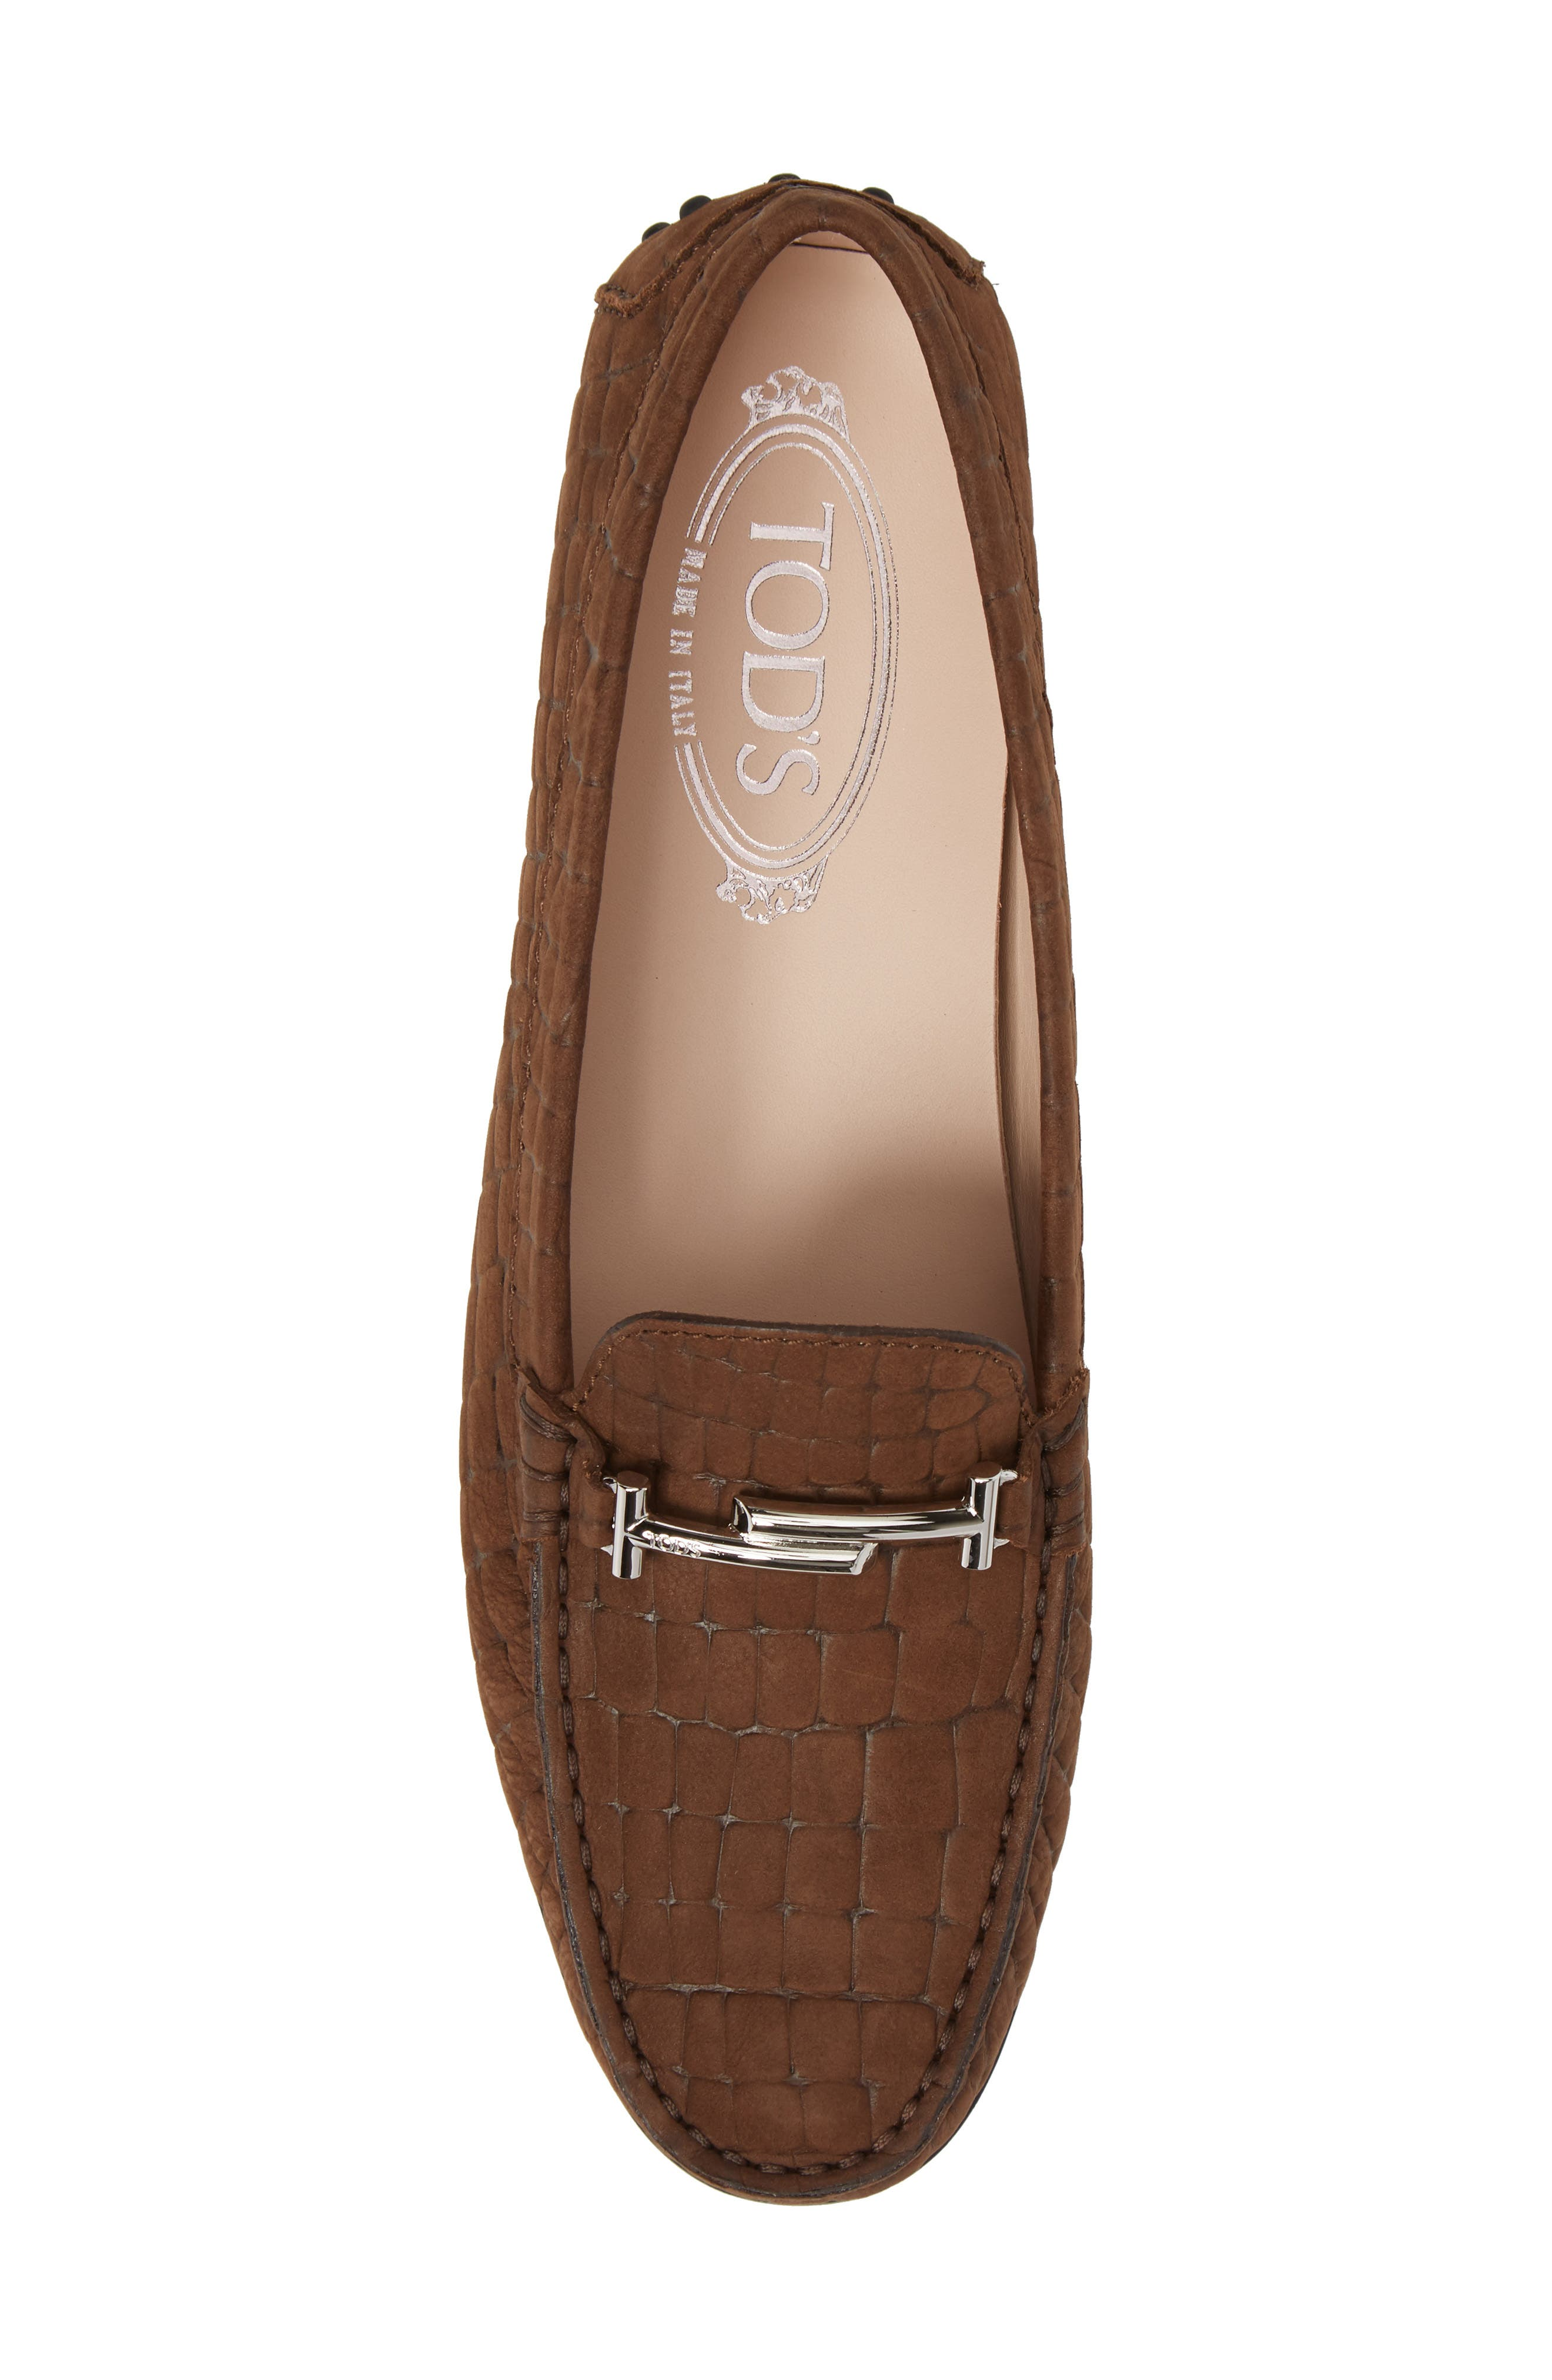 Tods Croc Embossed Double T Loafer,                             Alternate thumbnail 5, color,                             249